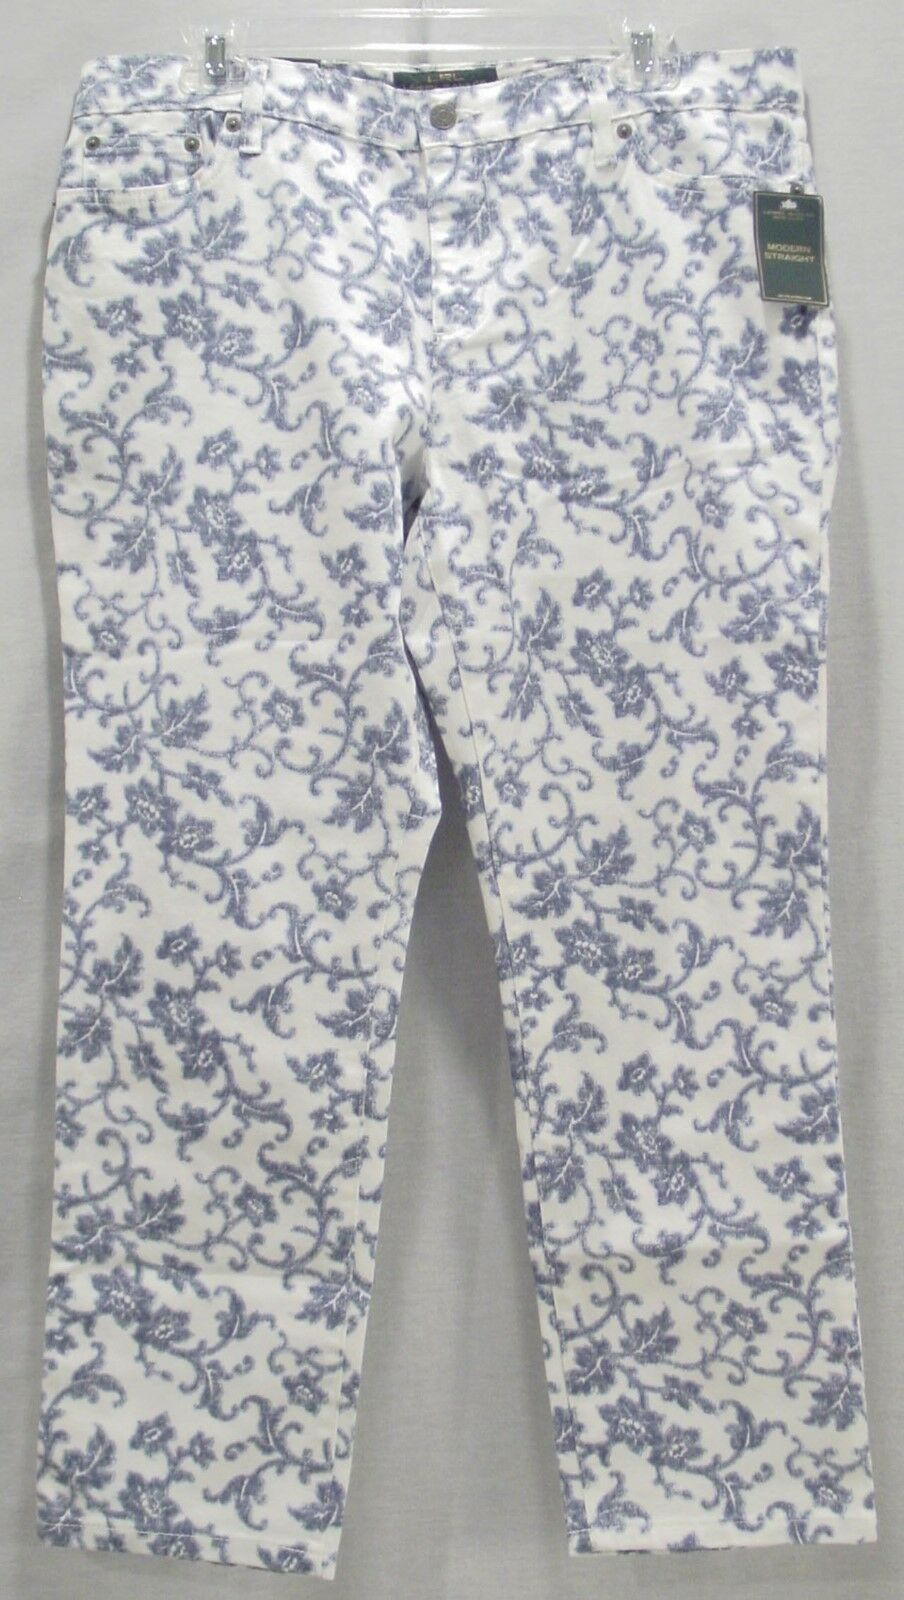 RALPH LAUREN LADIES PETITE blueE & WHITE FLORAL DENIM JEAN   PANTS NEW WITH TAGS